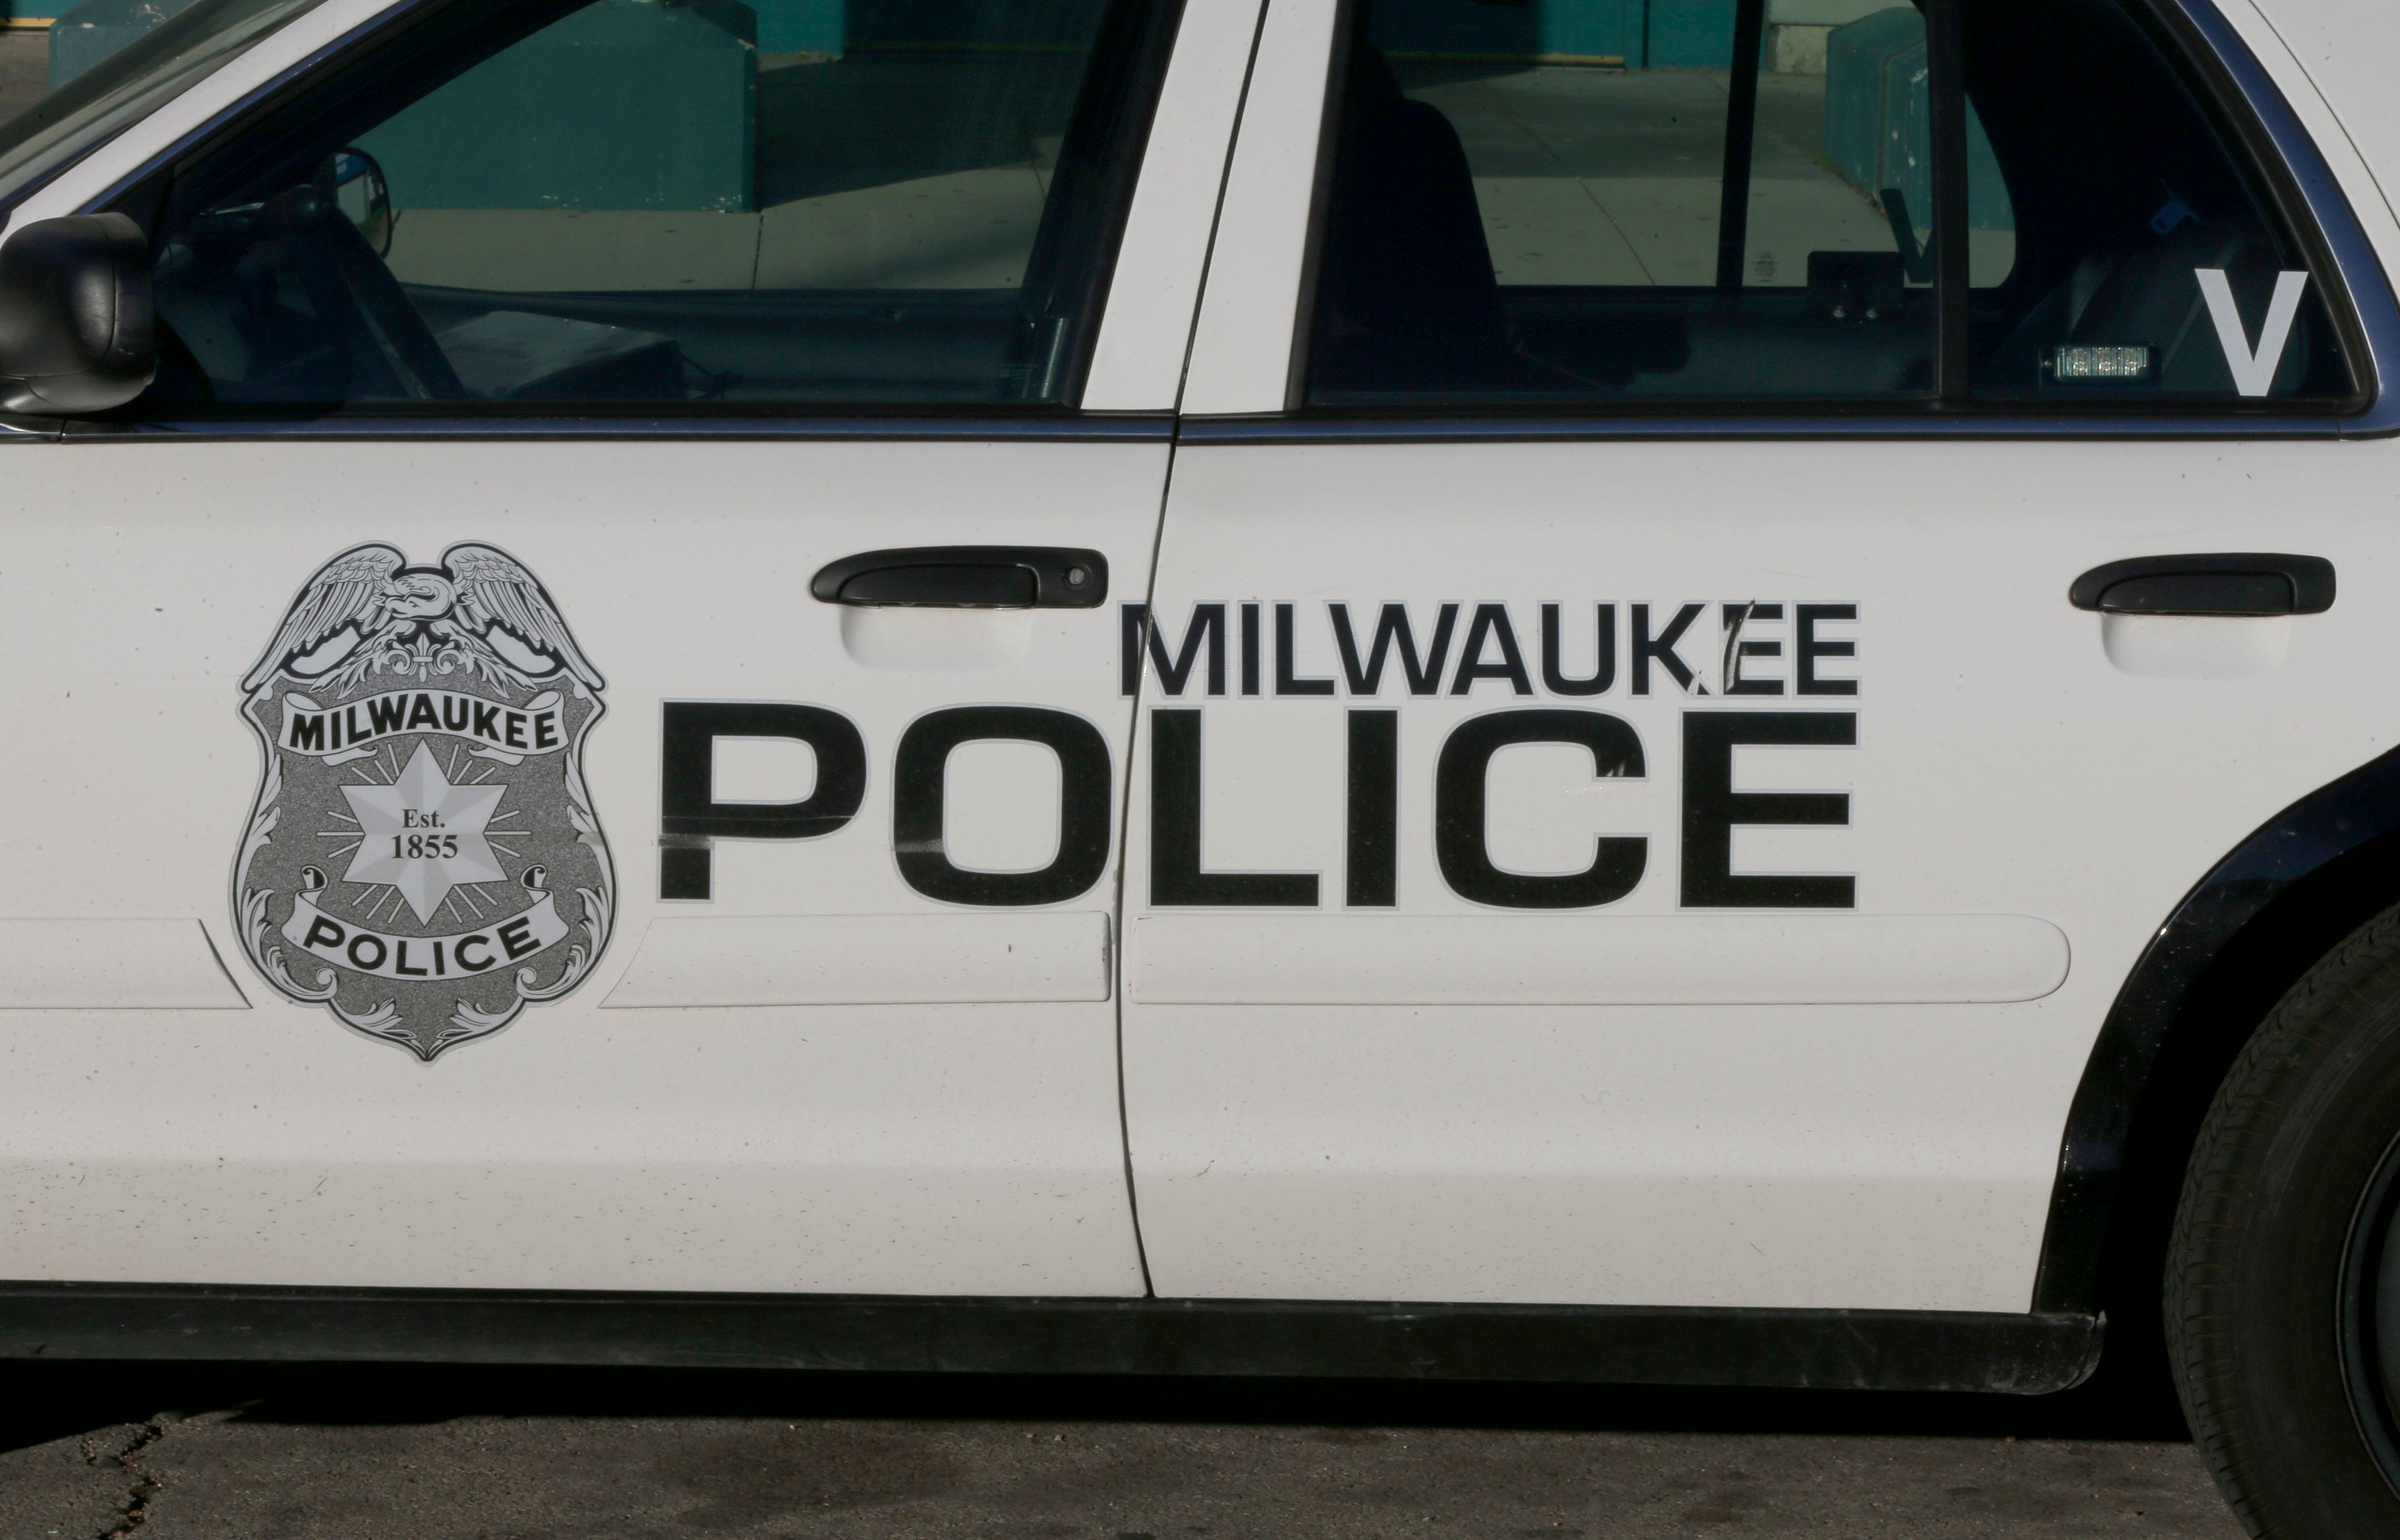 Police District 2 to hold open house Sunday | Milwaukee Journal Sentinel